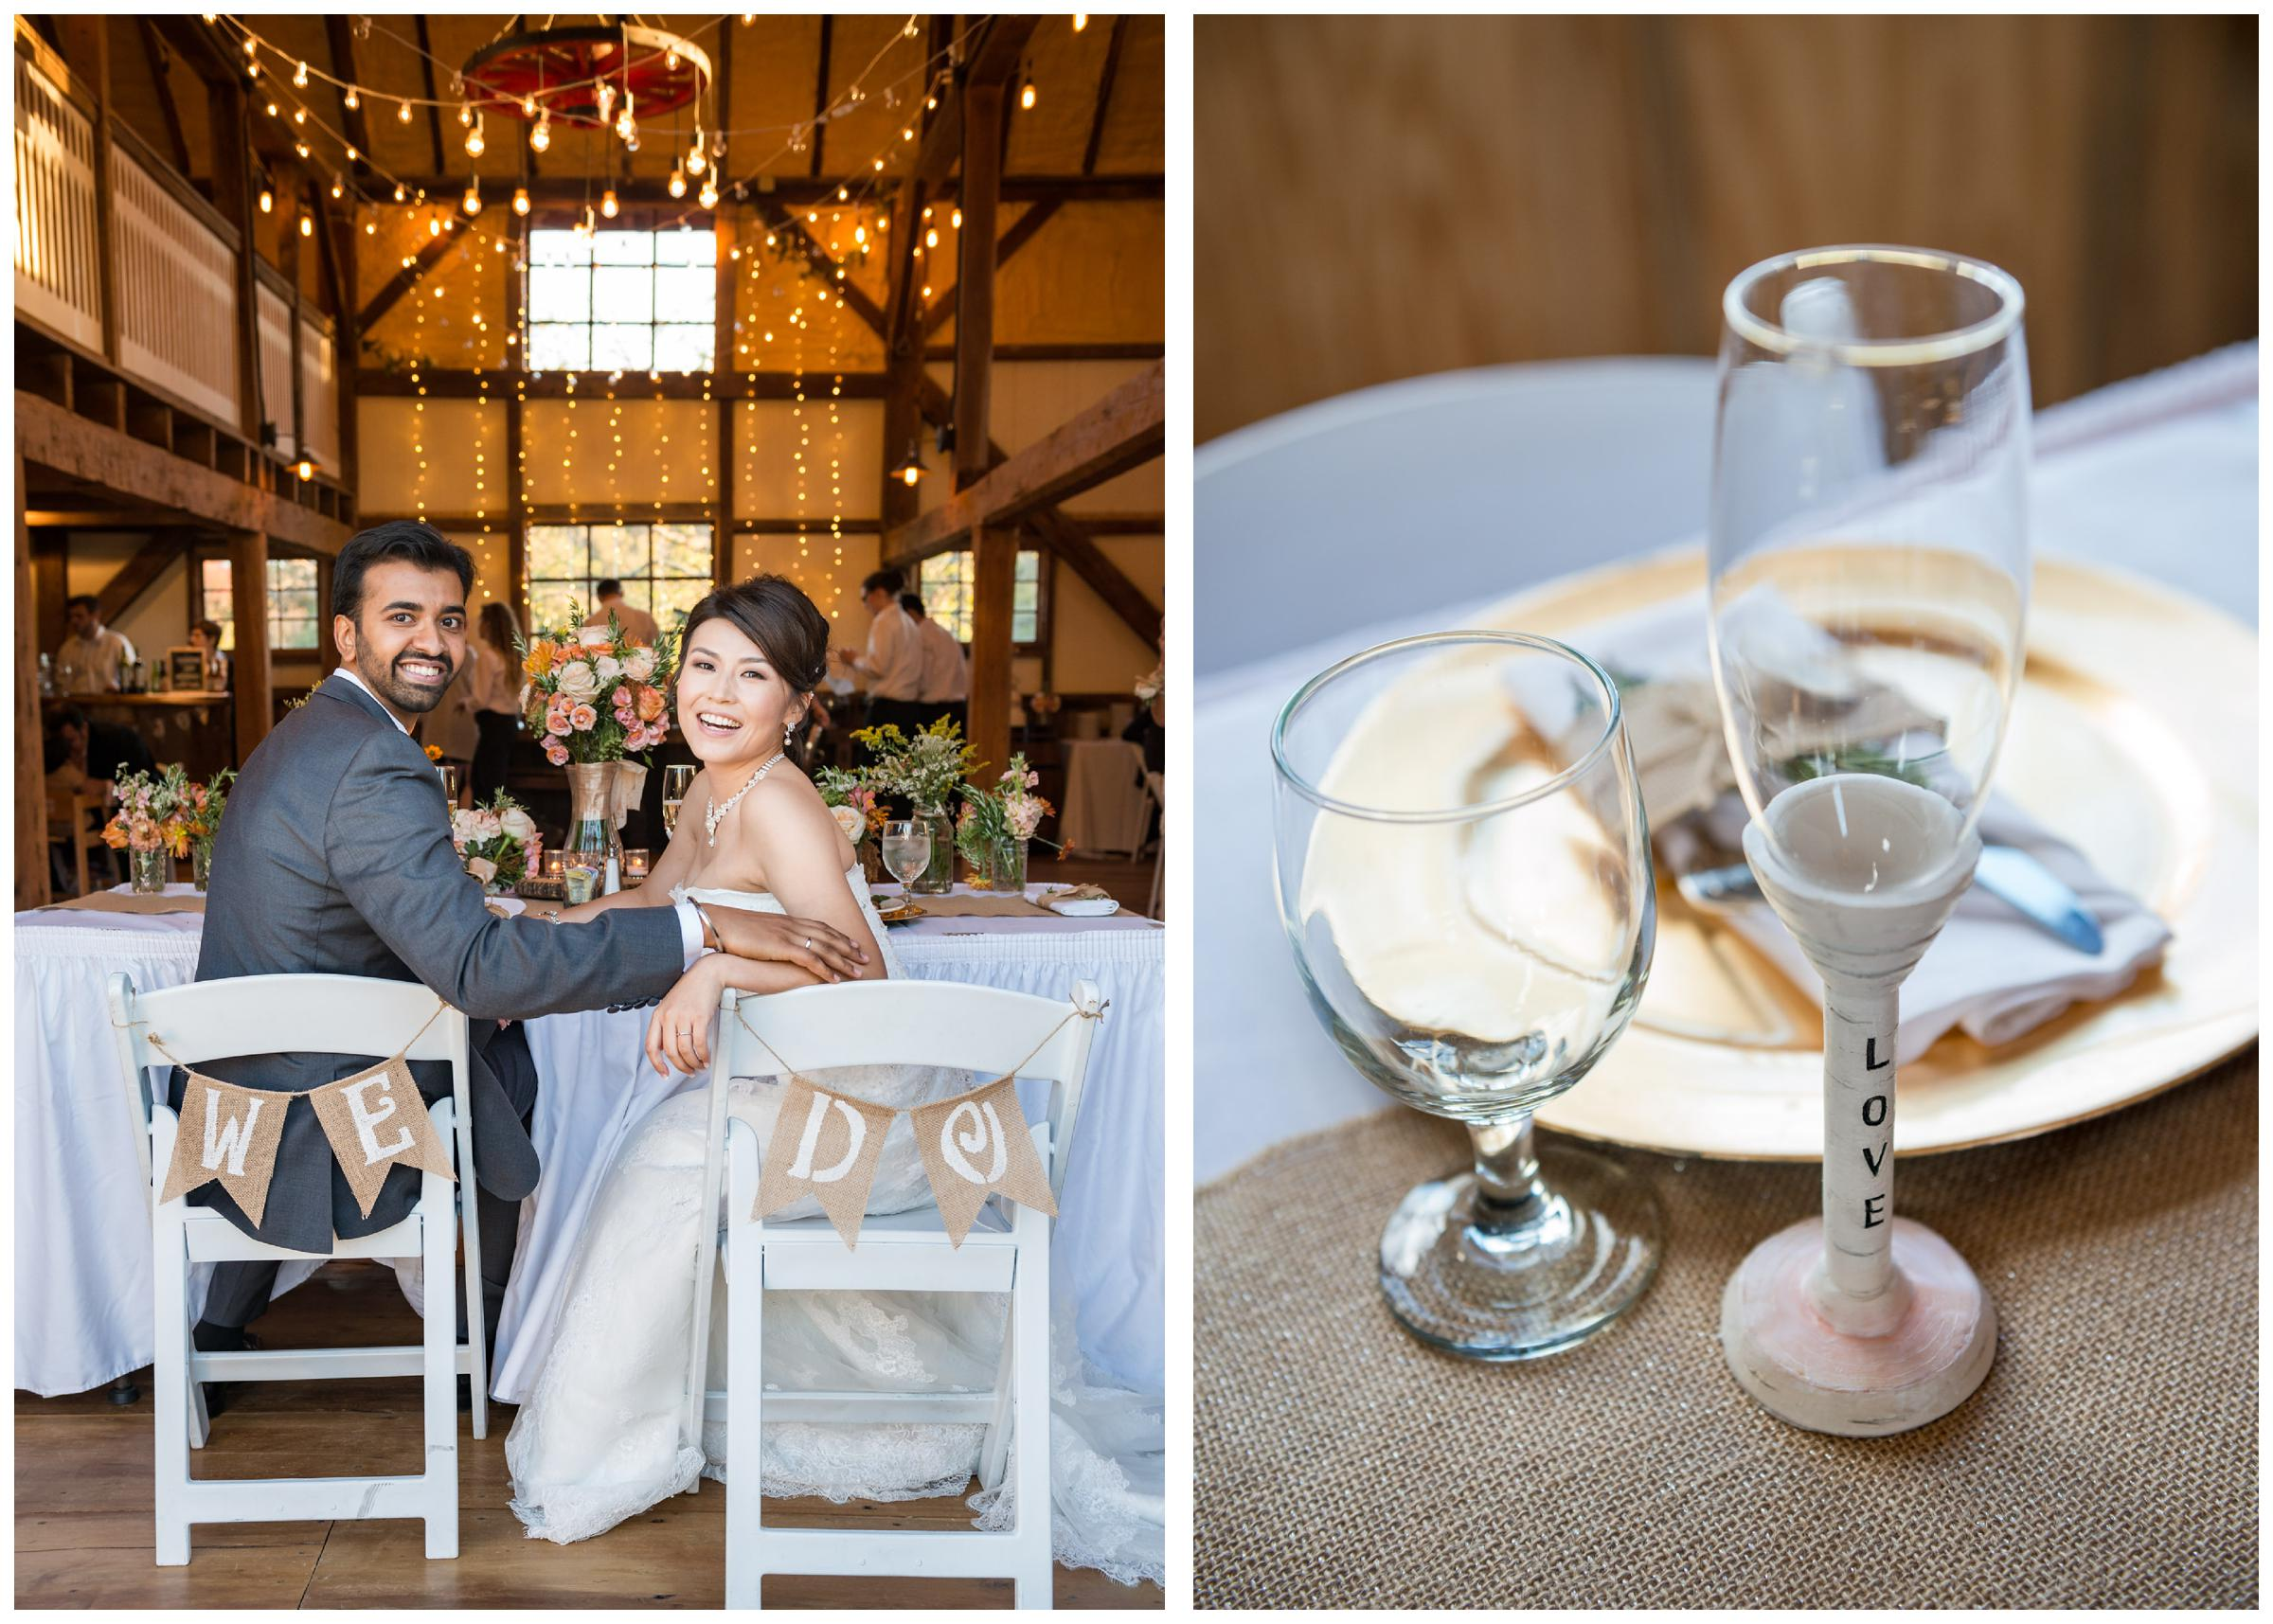 Bride and groom with twinkle lights at rustic wedding reception in barn at Stoneleigh Golf Club